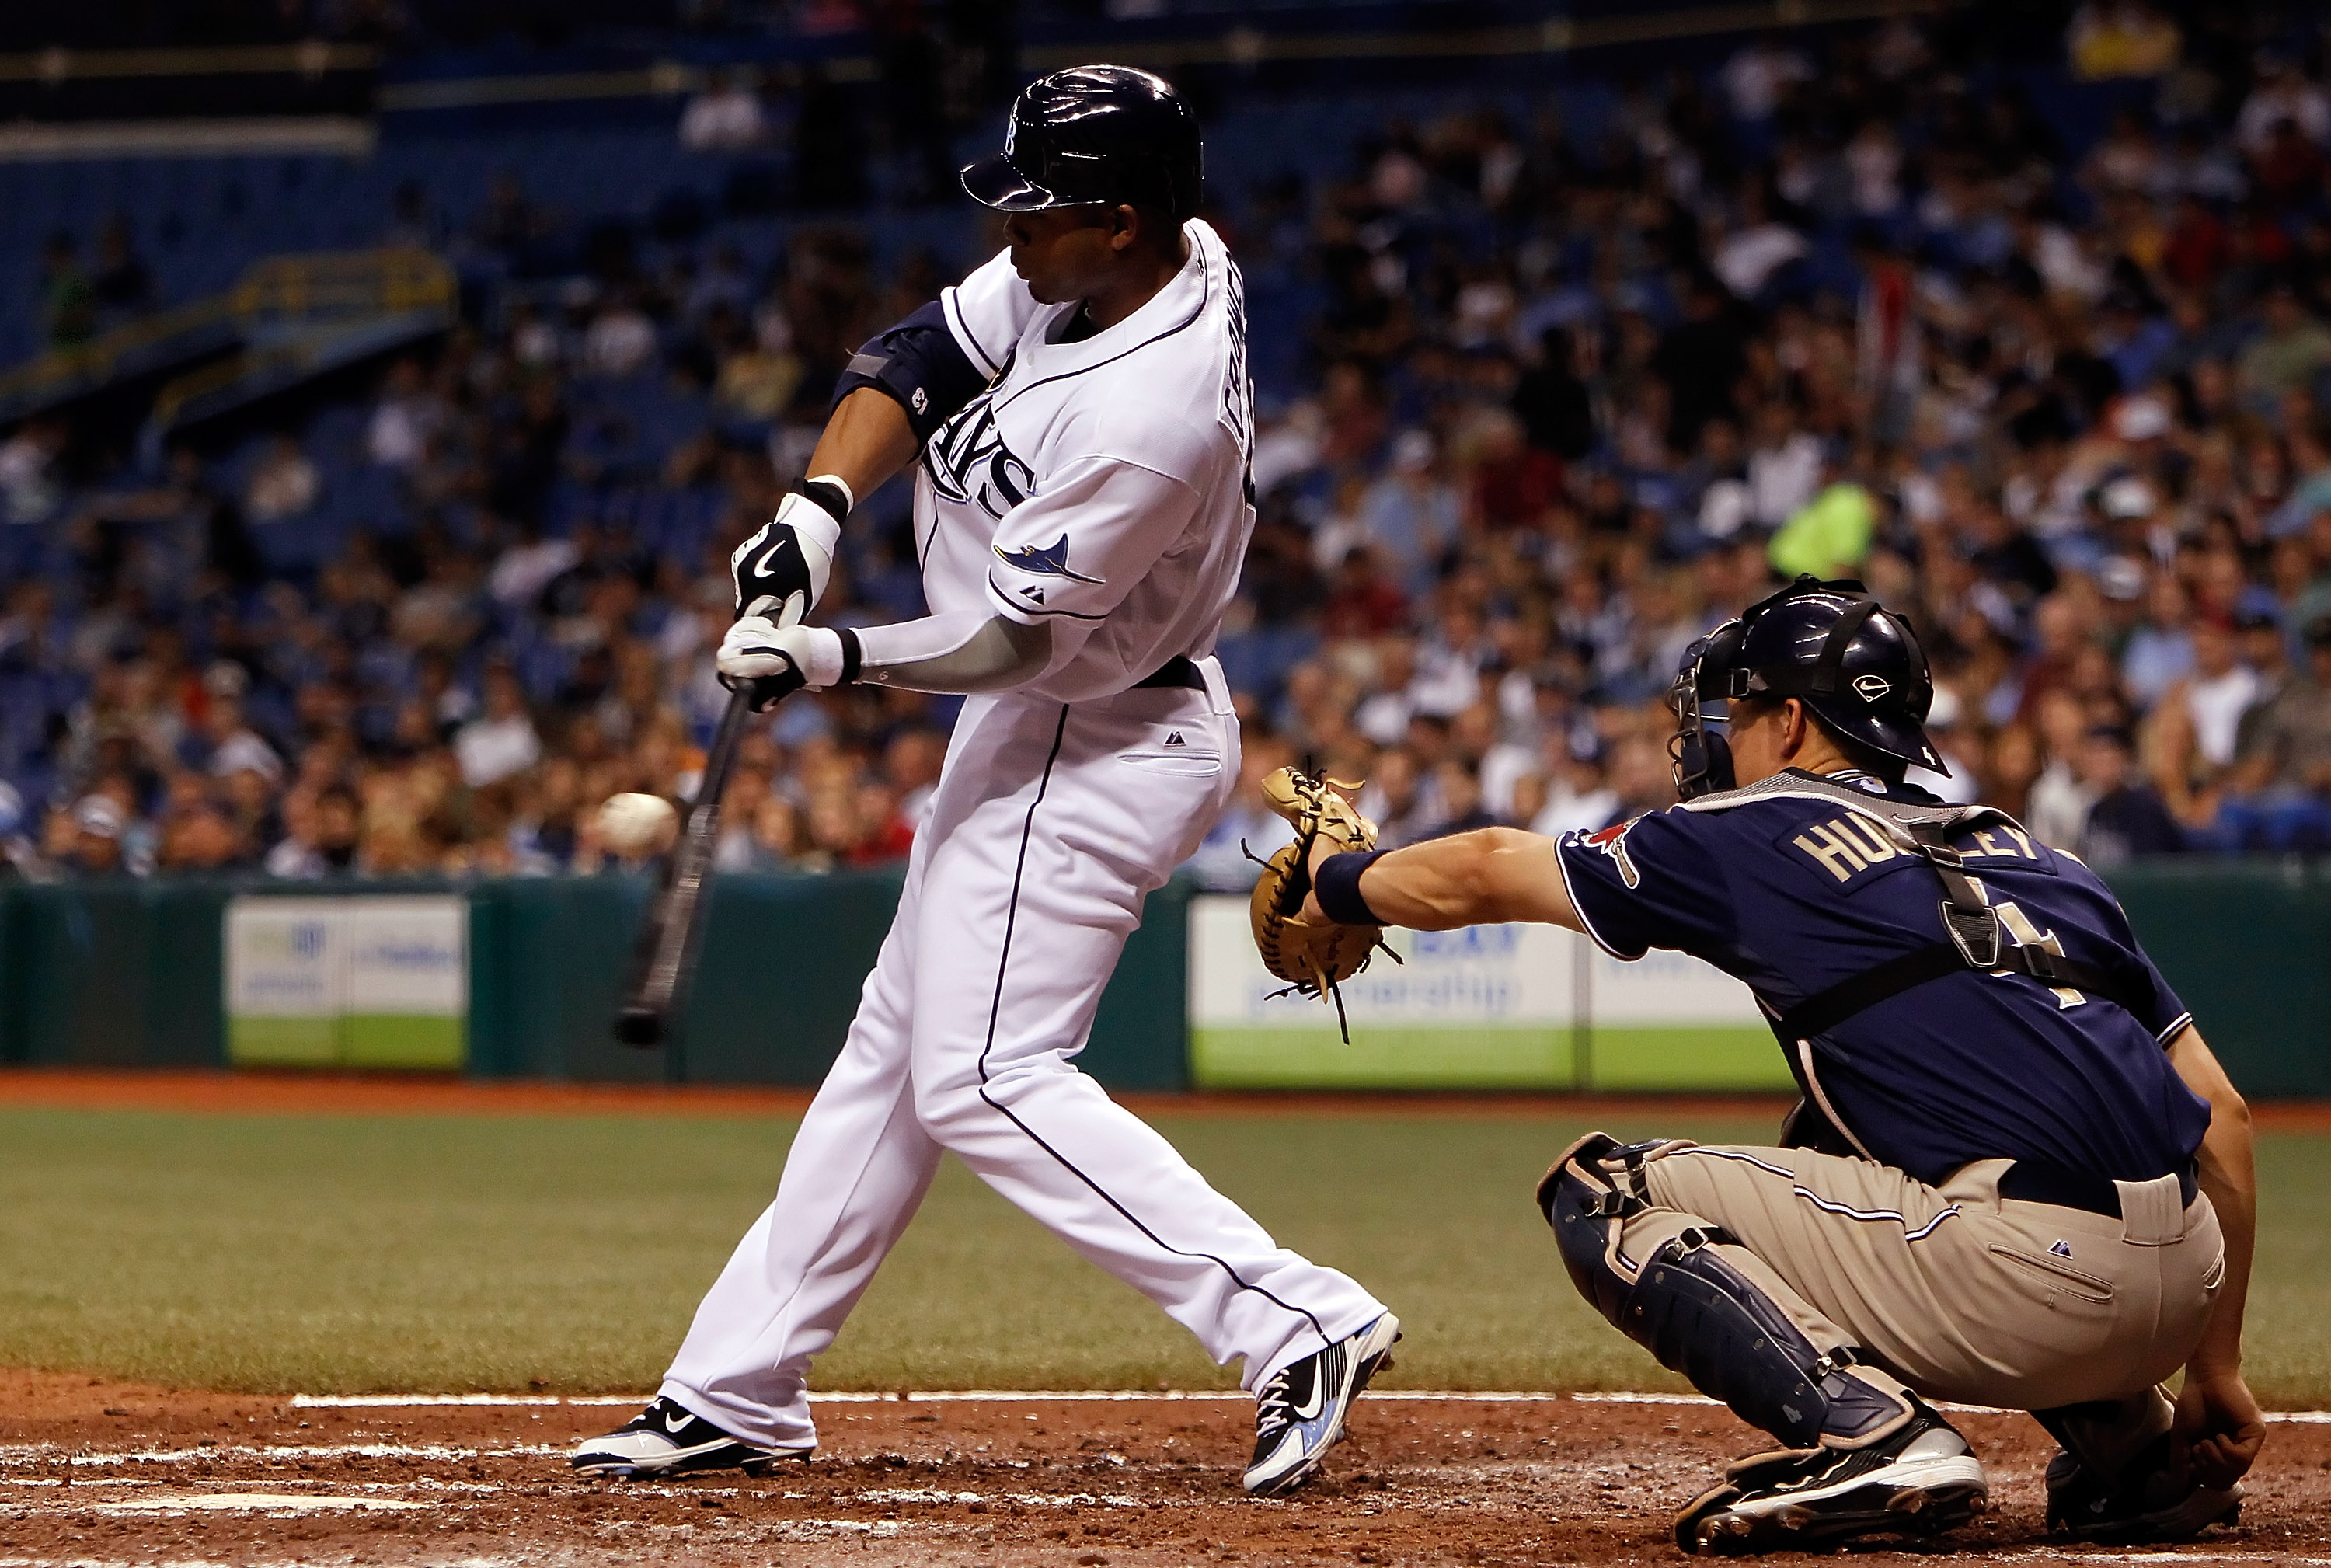 ST. PETERSBURG - JUNE 22:  Outfielder Carl Crawford #13 of the Tampa Bay Rays fouls off a pitch against the San Diego Padres during the game at Tropicana Field on June 22, 2010 in St. Petersburg, Florida.  (Photo by J. Meric/Getty Images)